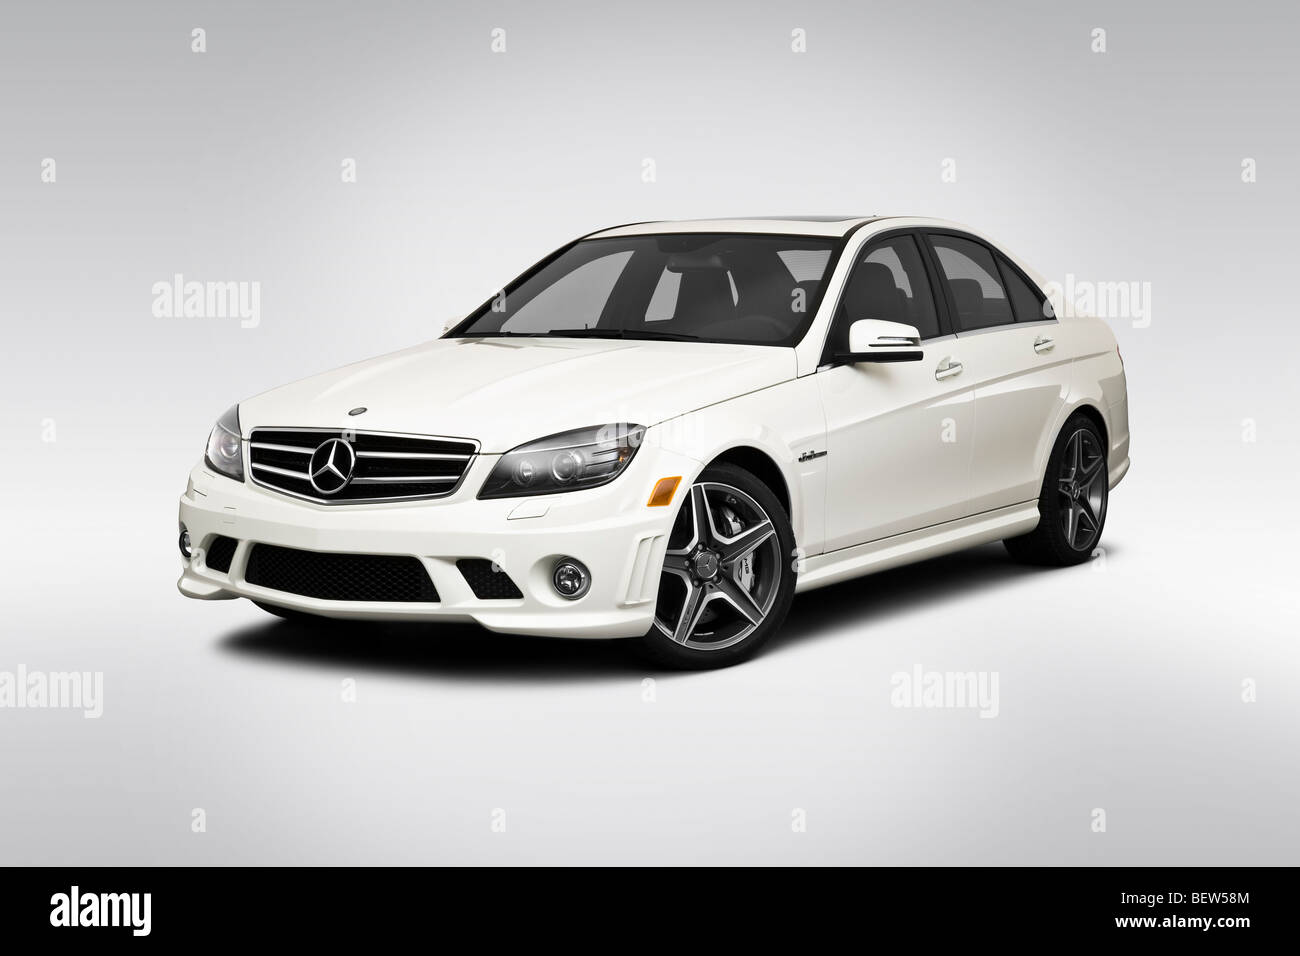 2010 Mercedes-Benz C-Class C63 AMG In White